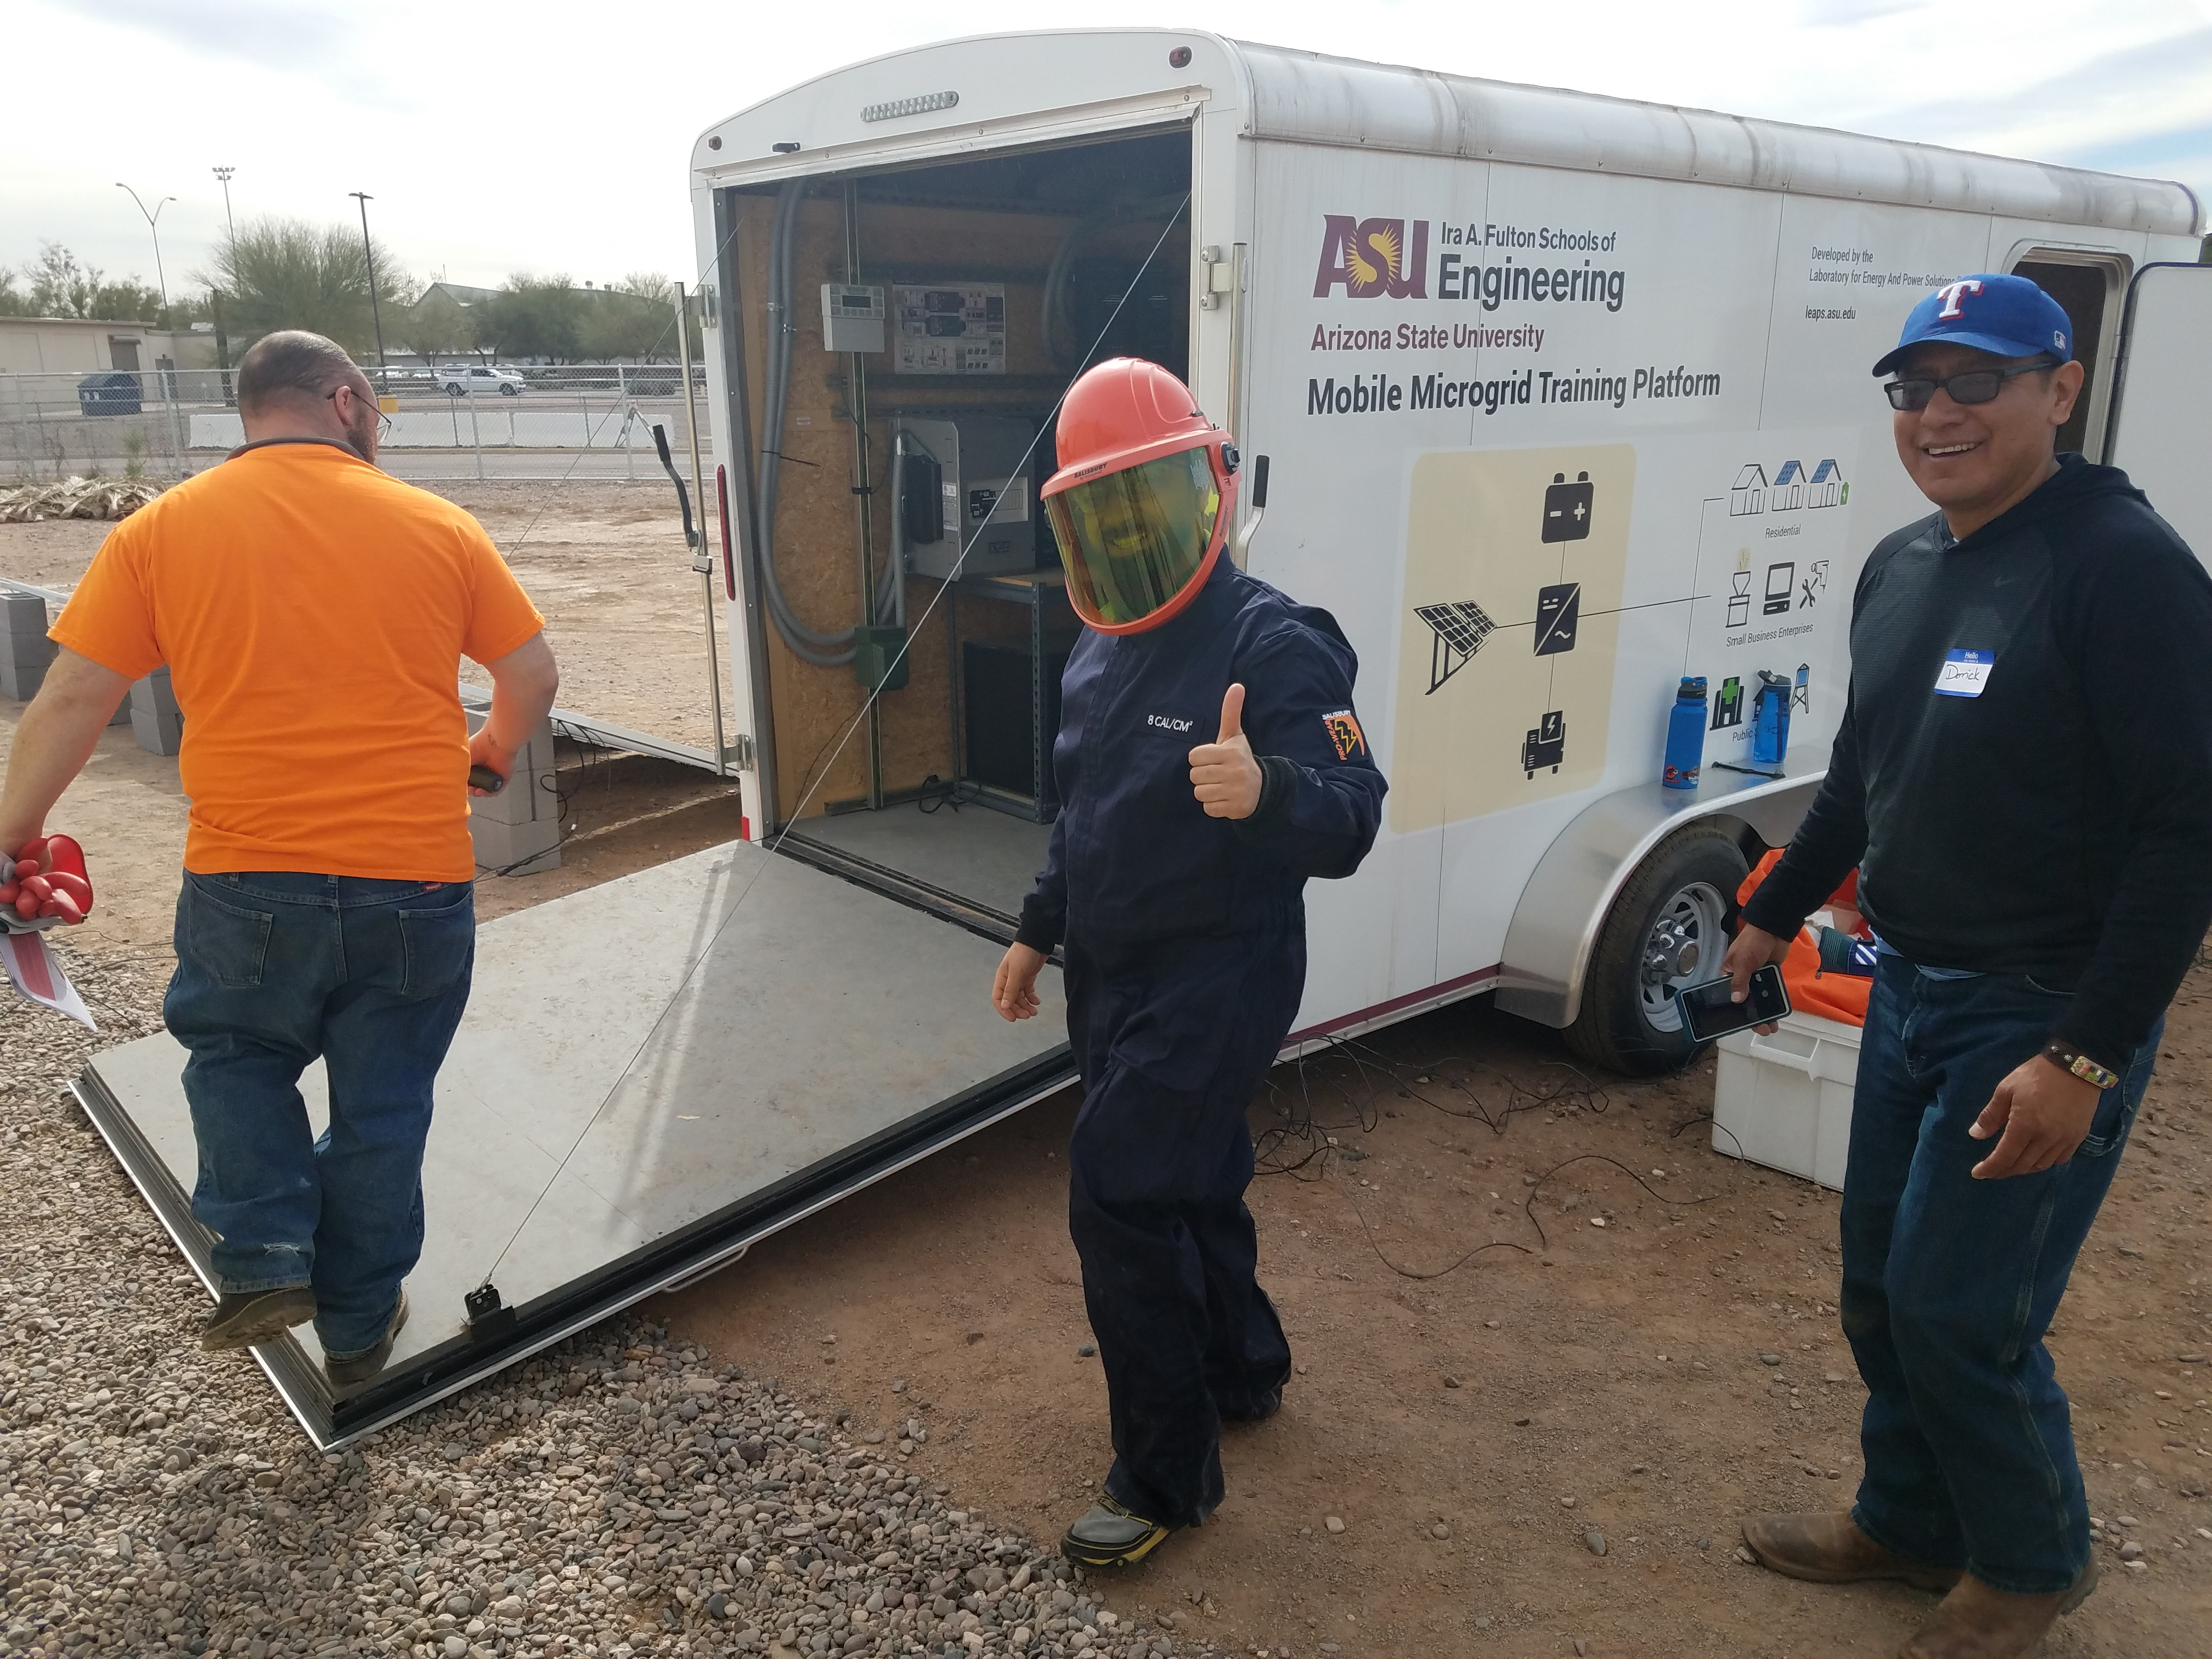 Image of microgrid bootcamp attendee in protective gear.